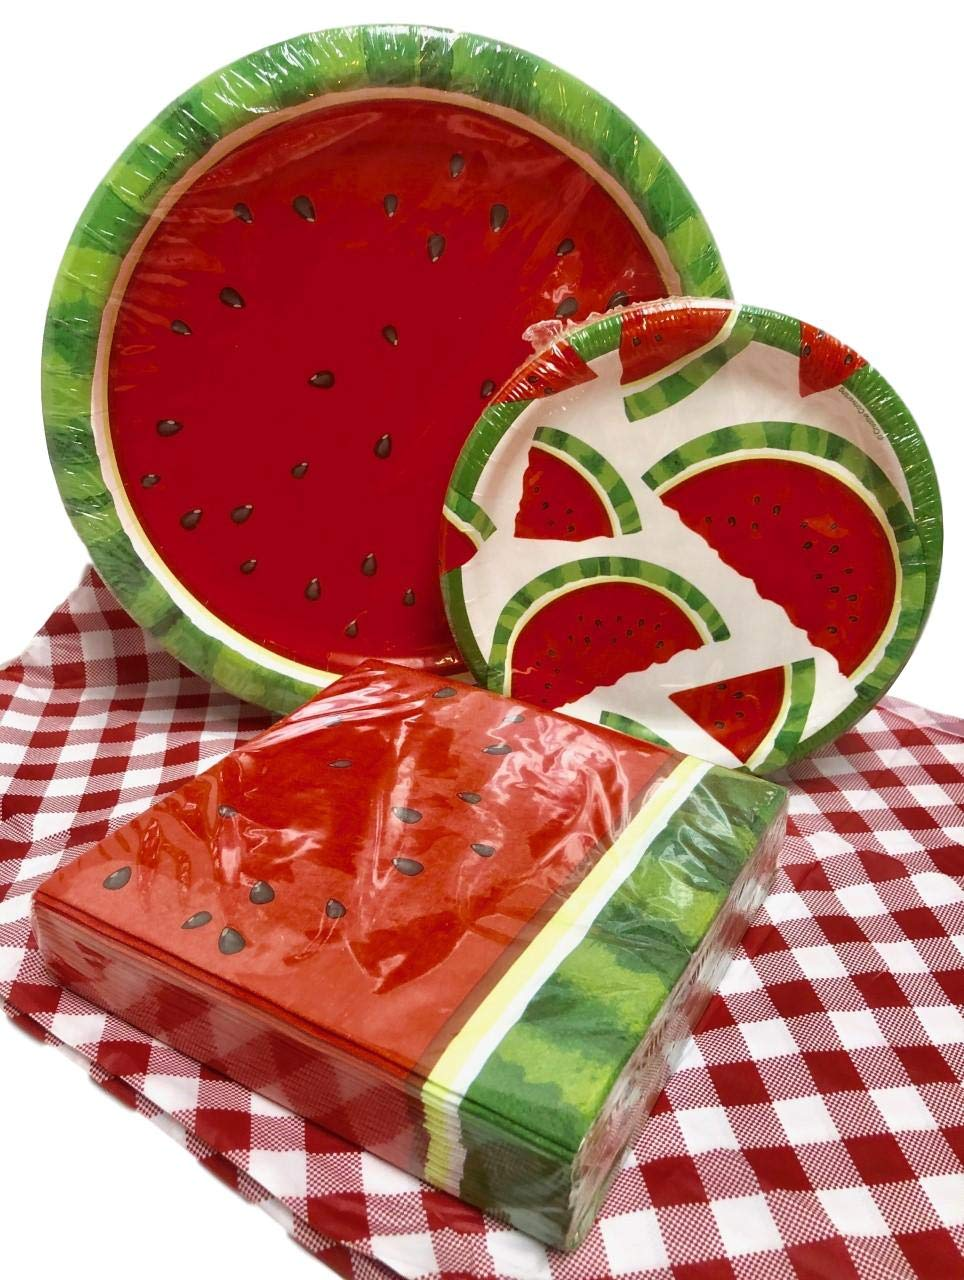 Watermelon Picnic Party Supplies Disposable Paper Plates, Napkins, Tablecloth - 105 Piece Spring and Summer Bundle (Red)